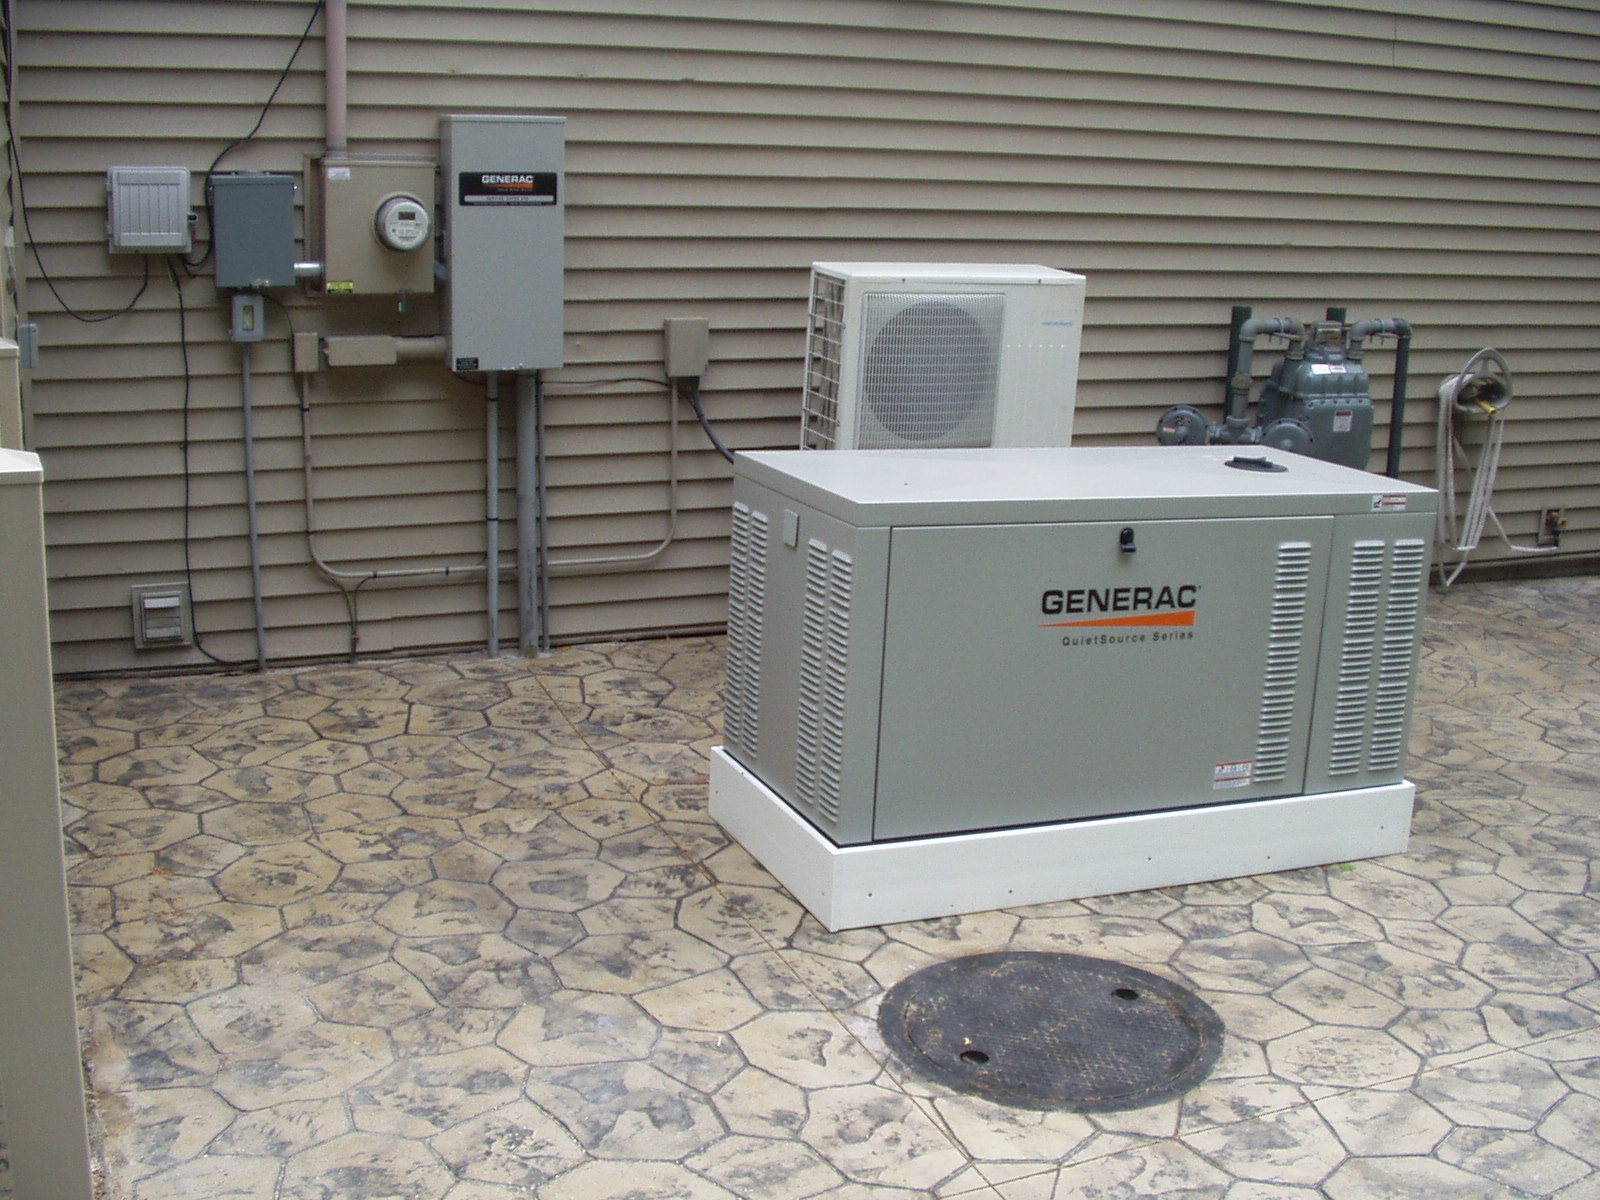 Water Cooled Generac Generator